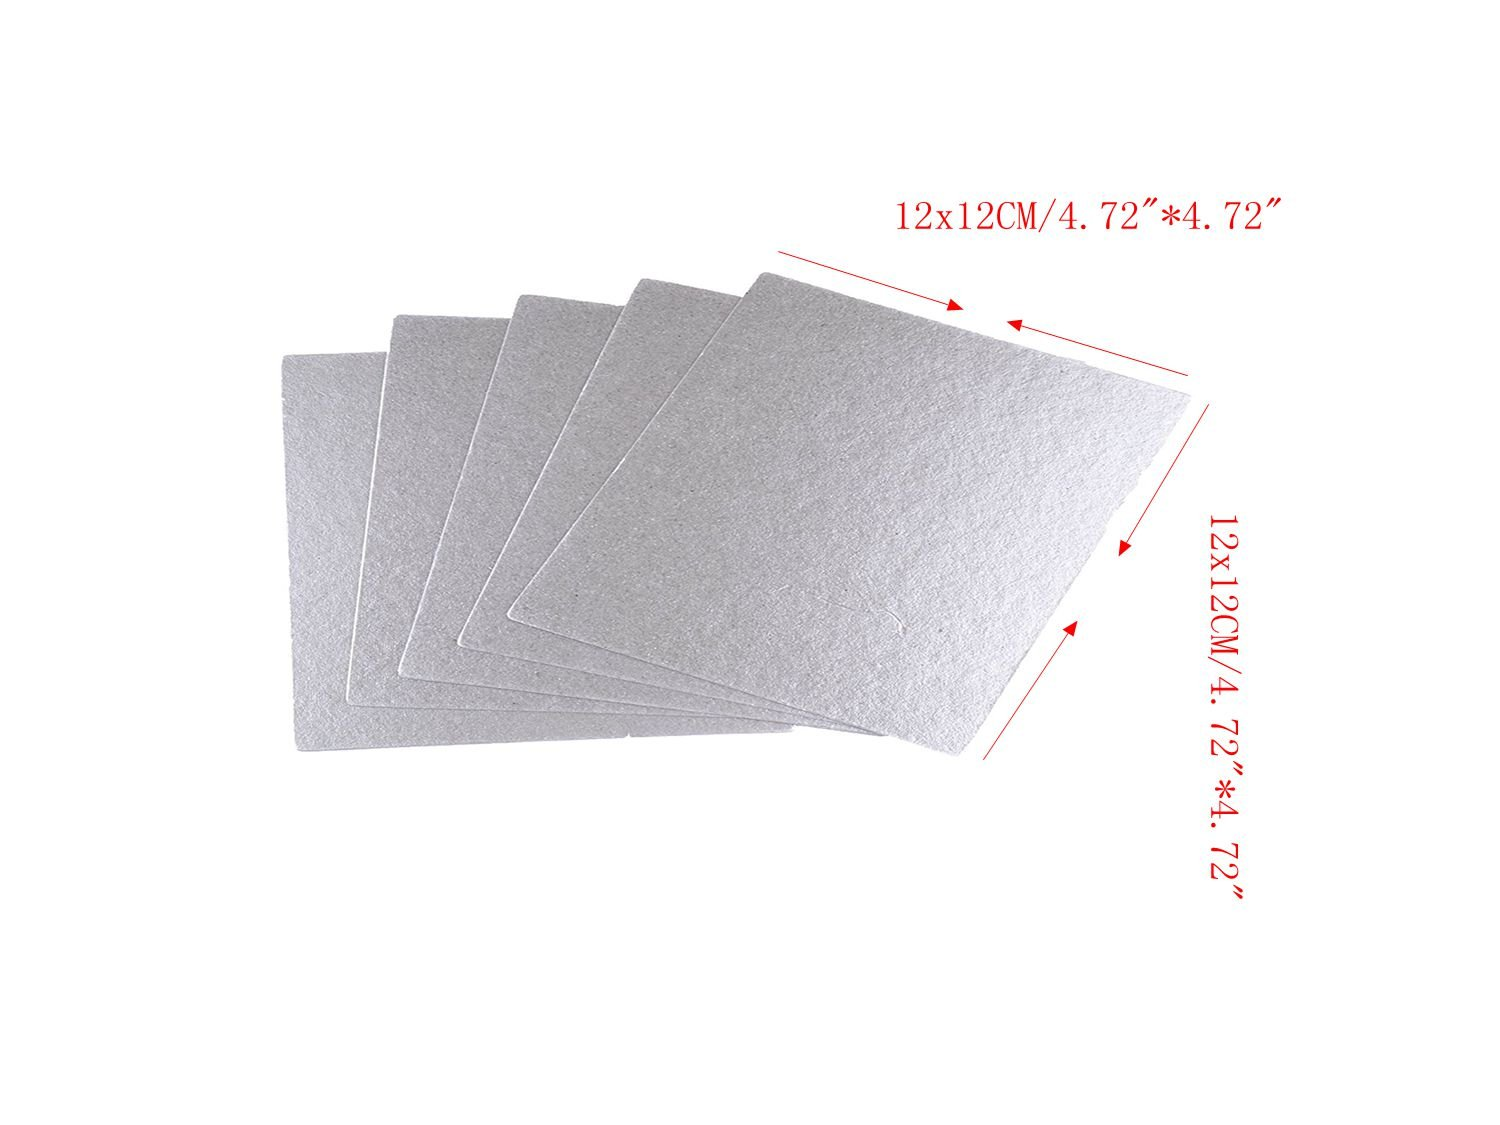 "Aquamonica Repair of mica plate high temperature insulation board by domestic microwave oven 12x12CM/4.72""4.72"" (5pcs/package)"